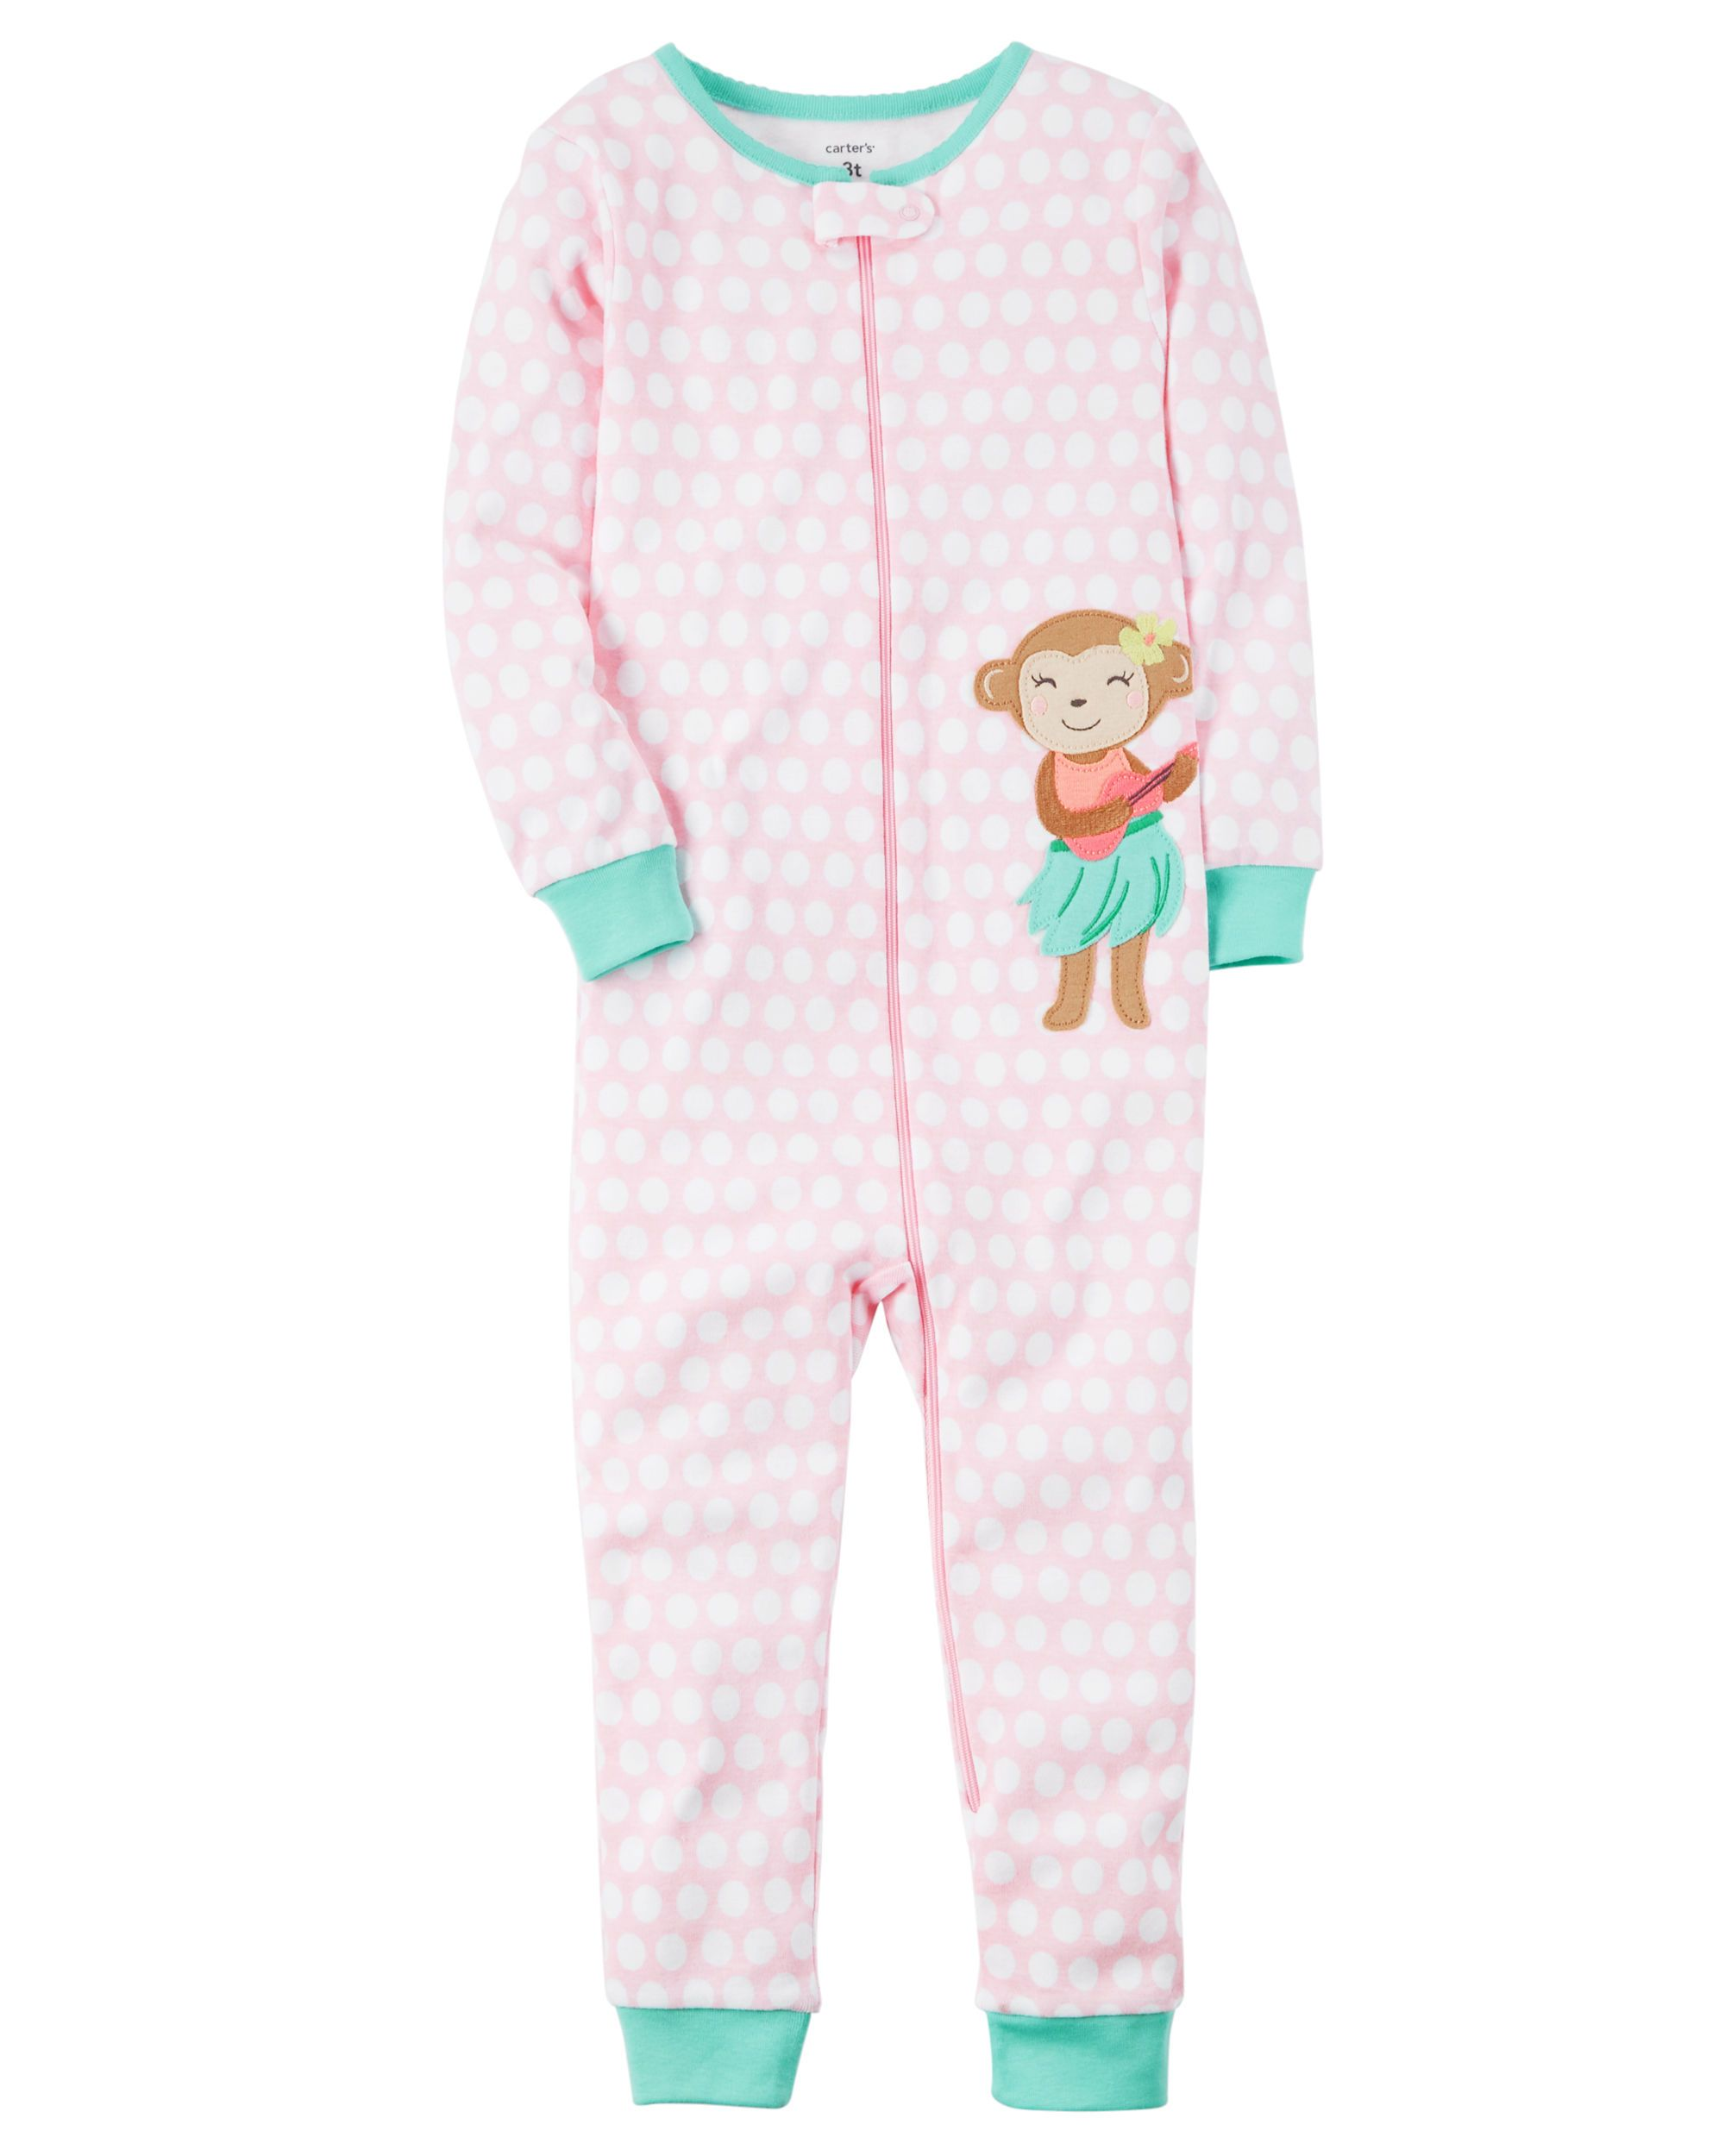 50a3c9de5b1f Baby Girl 1-Piece Snug Fit Cotton Footless PJs